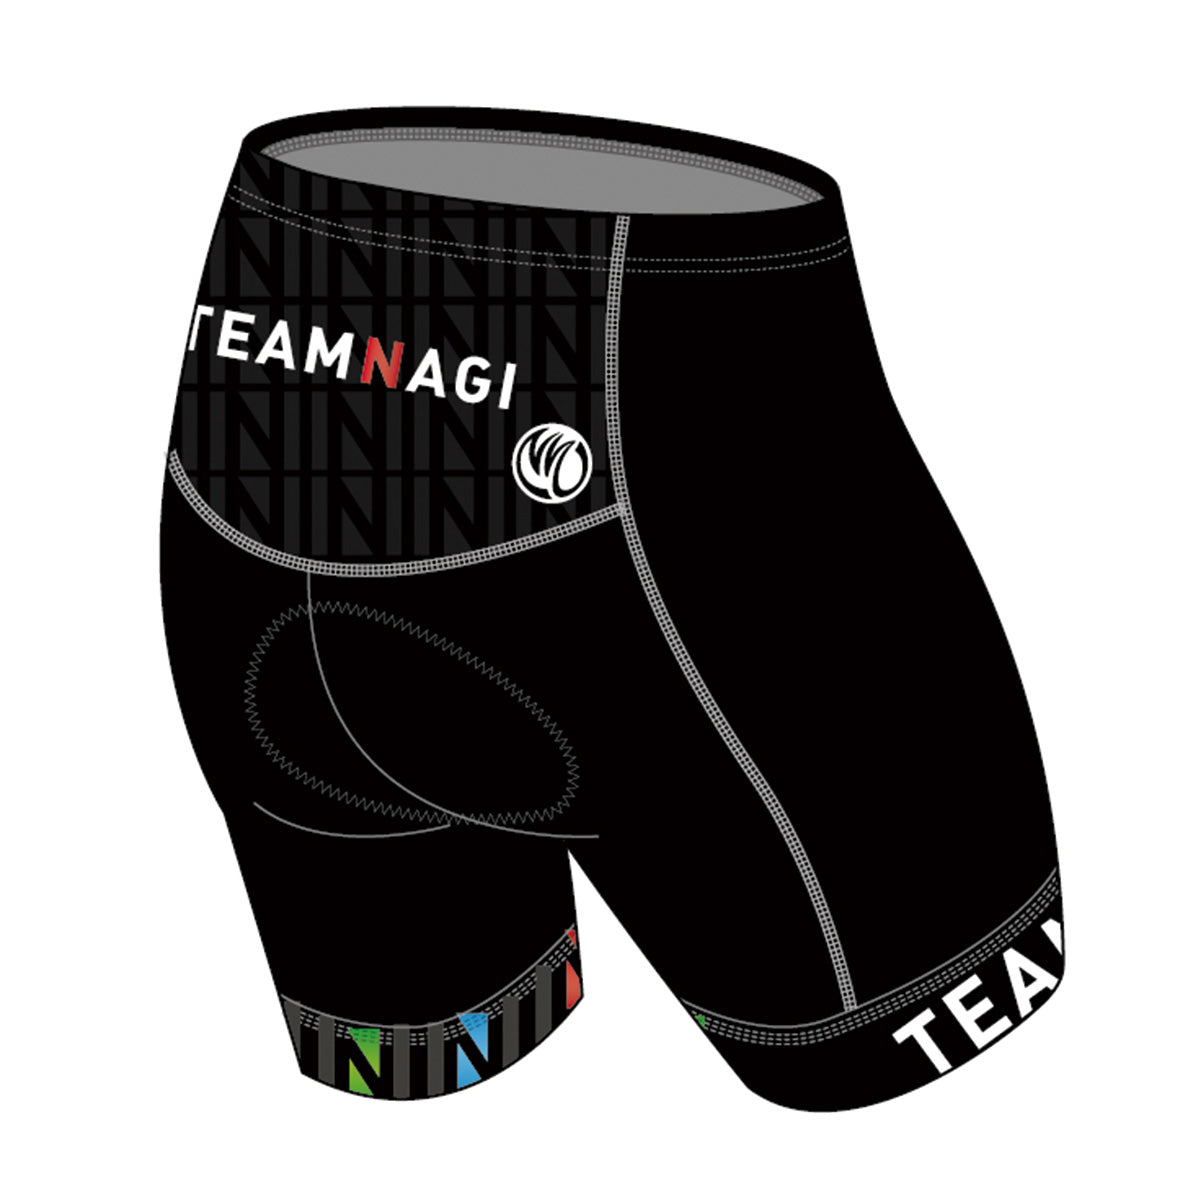 Team Nagi BLACK BRONZE Tri Shorts